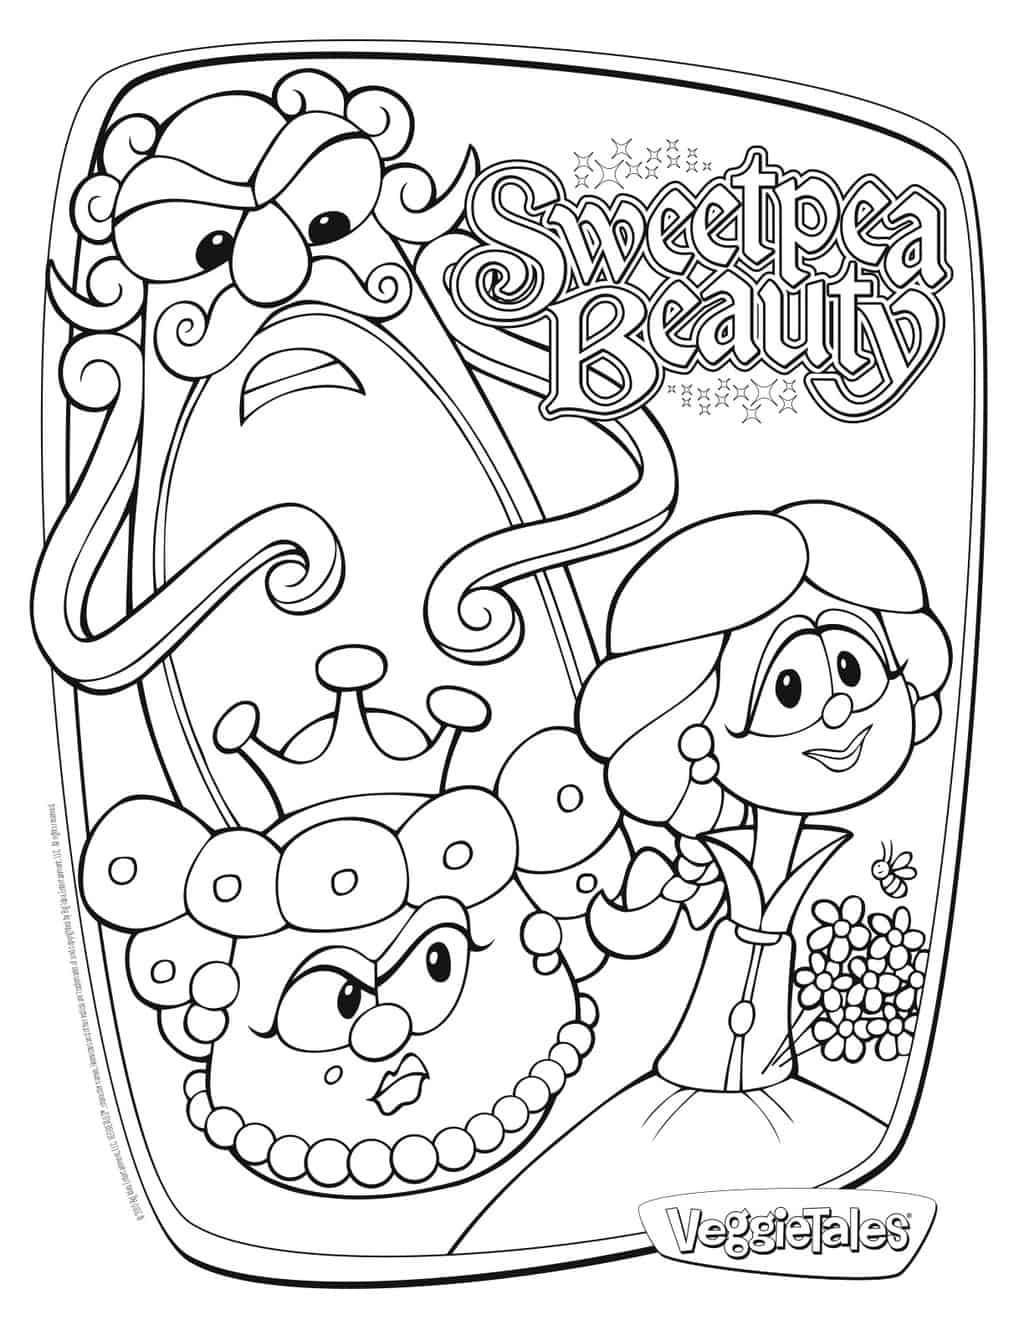 veggietales coloring pages free printable veggie tales coloring pages for kids coloring veggietales pages